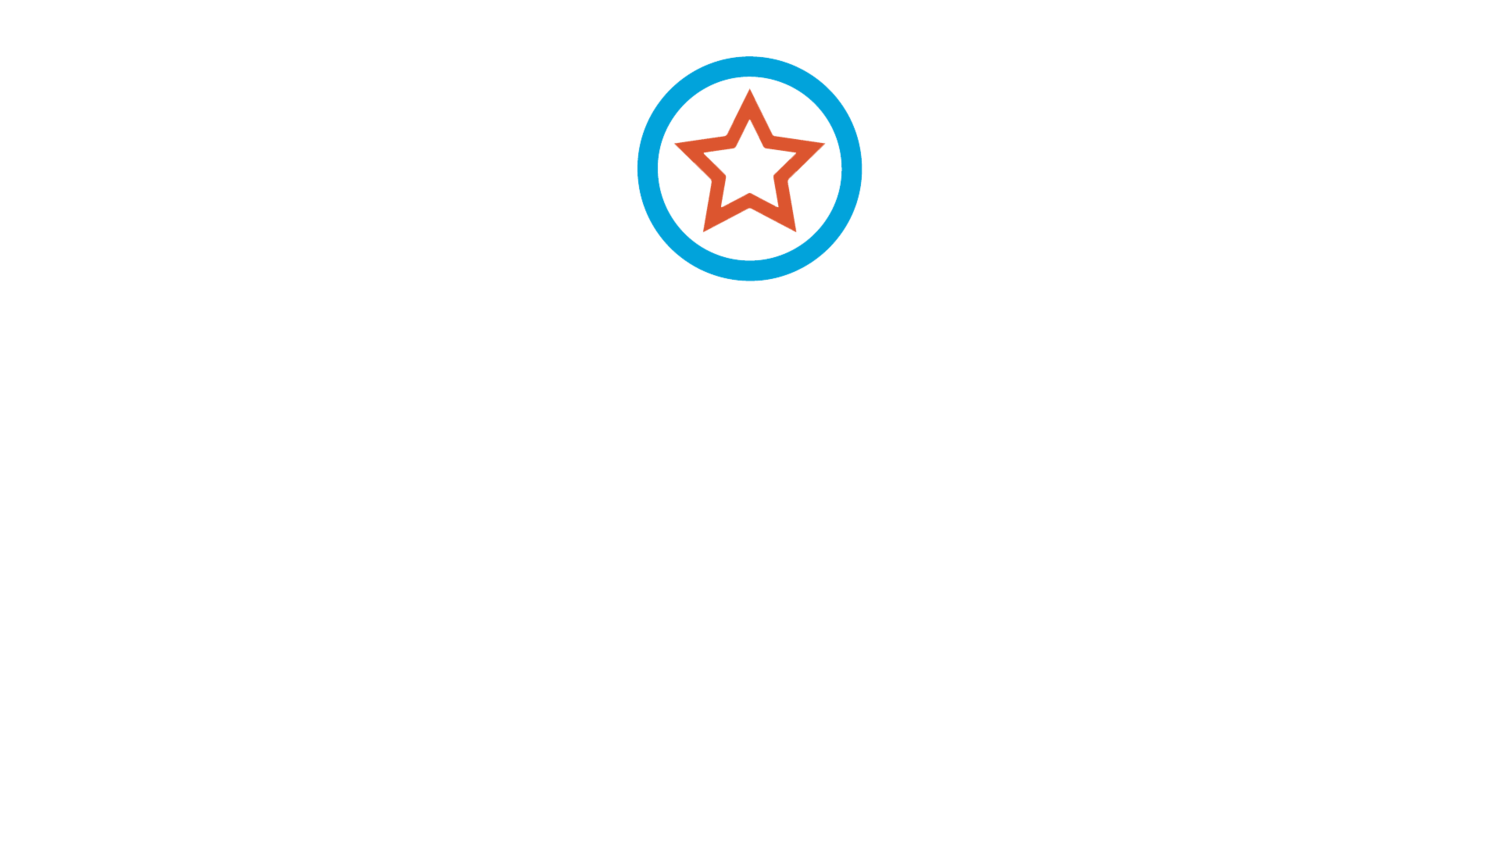 Caleb Johnson Live